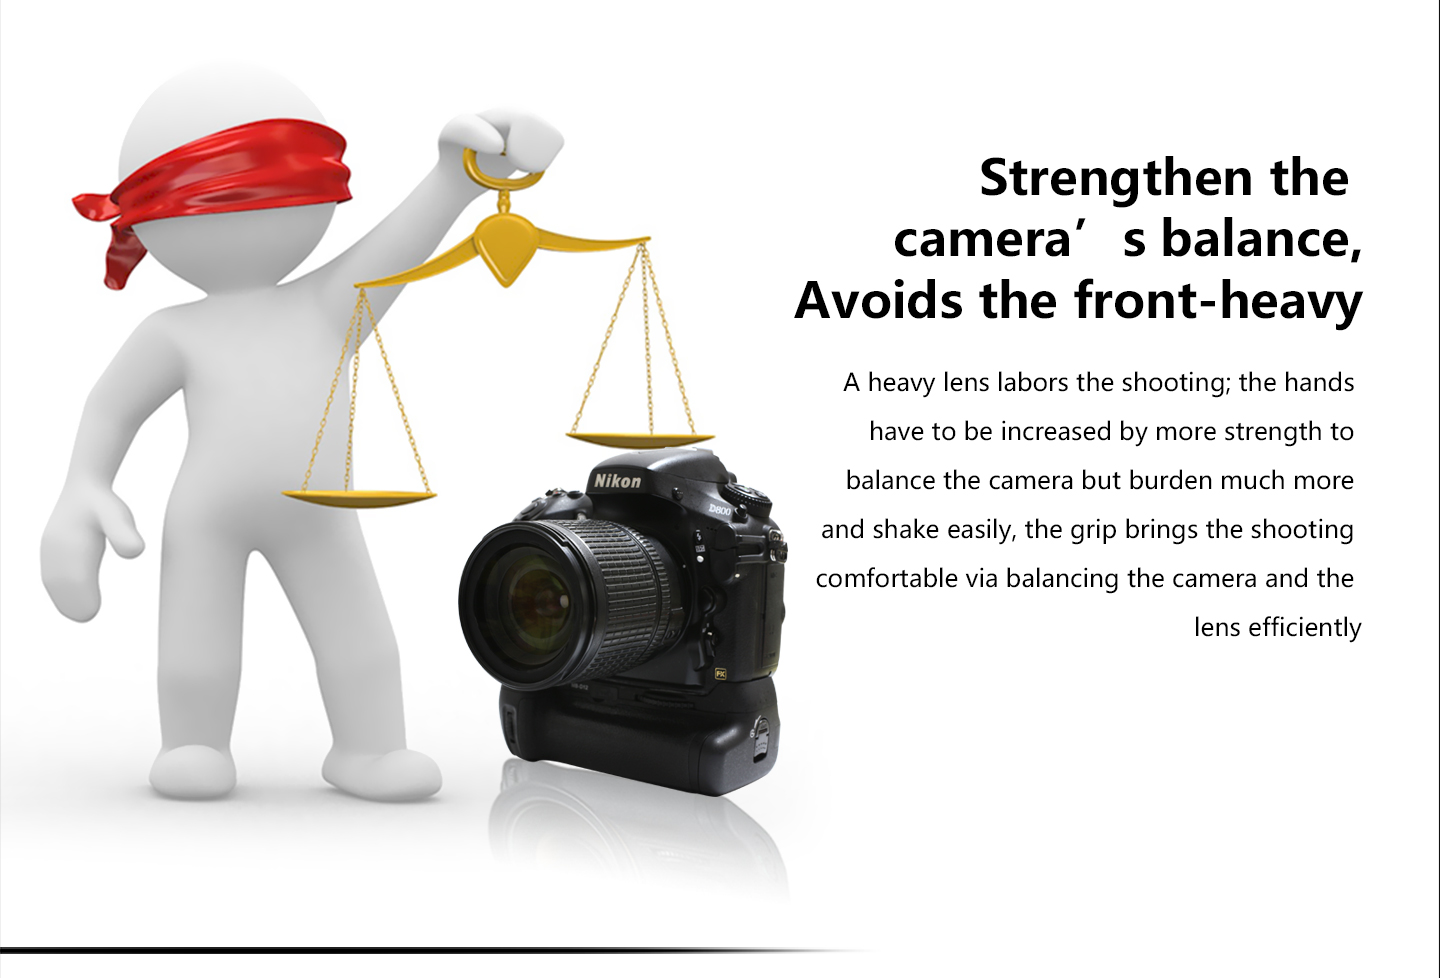 Strengthen the camera's balance, Avoids the front-heavy